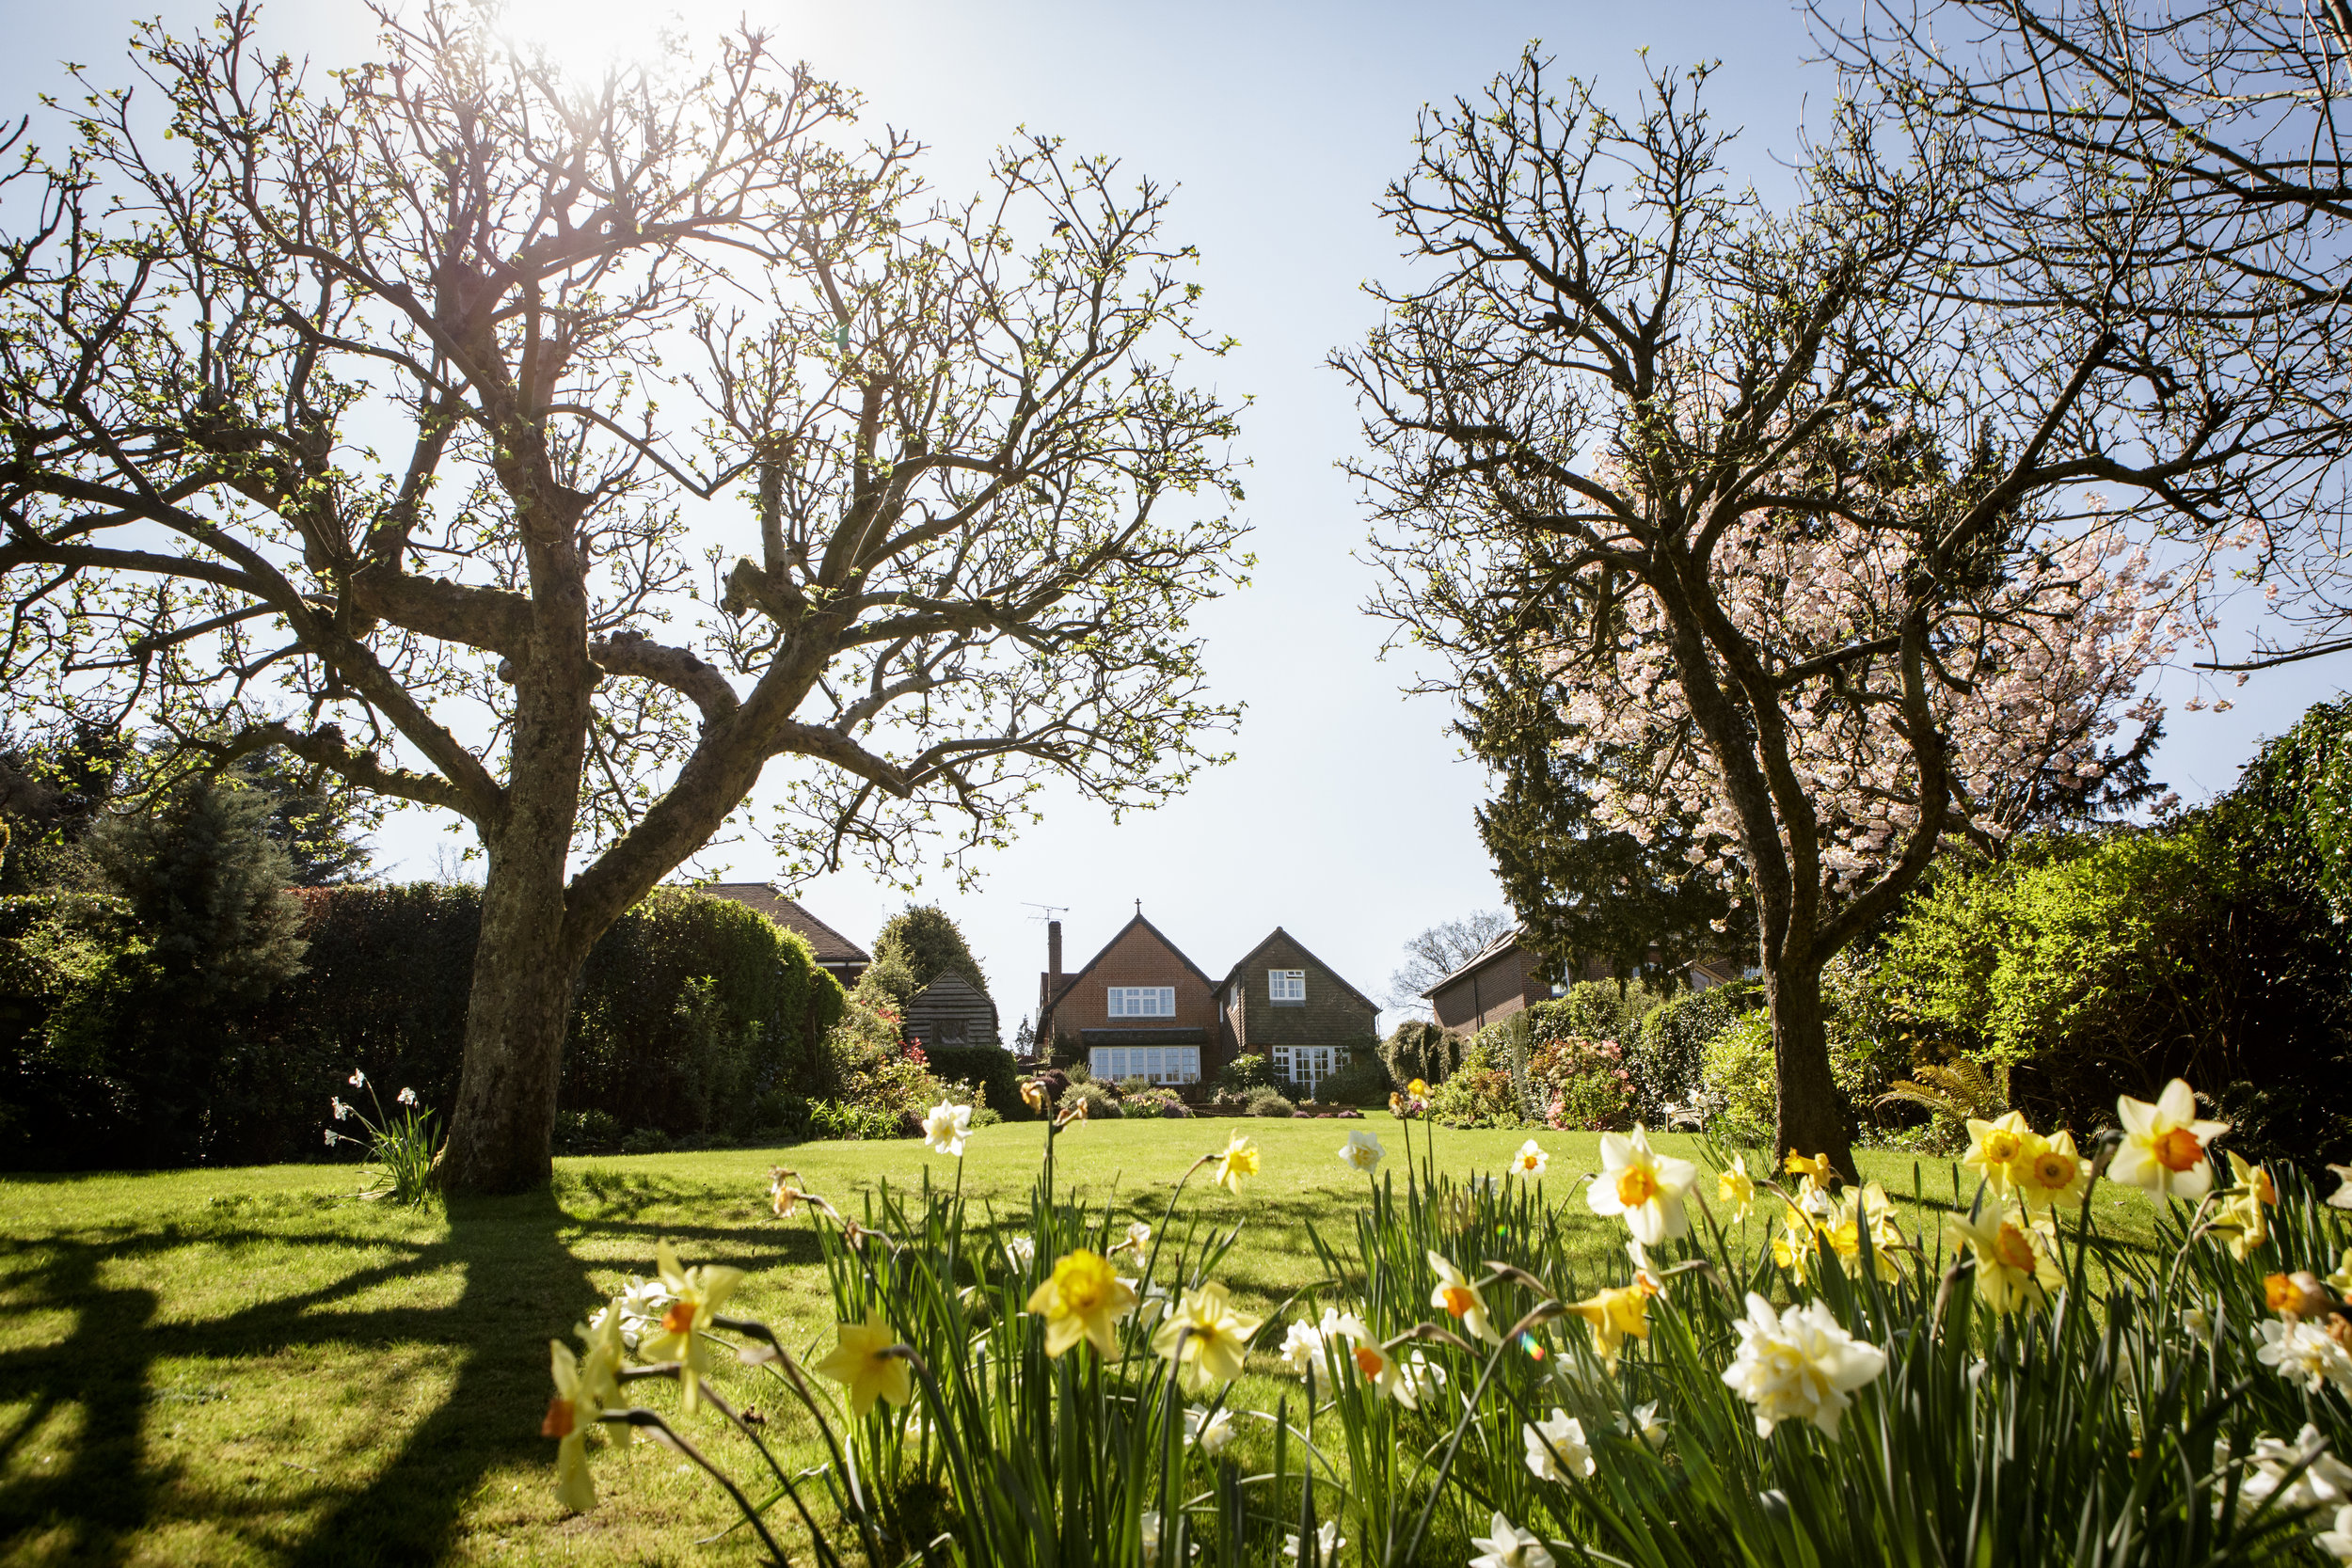 My parent's house in the village of Dockenfield, in surrey, about an hour outside of London.